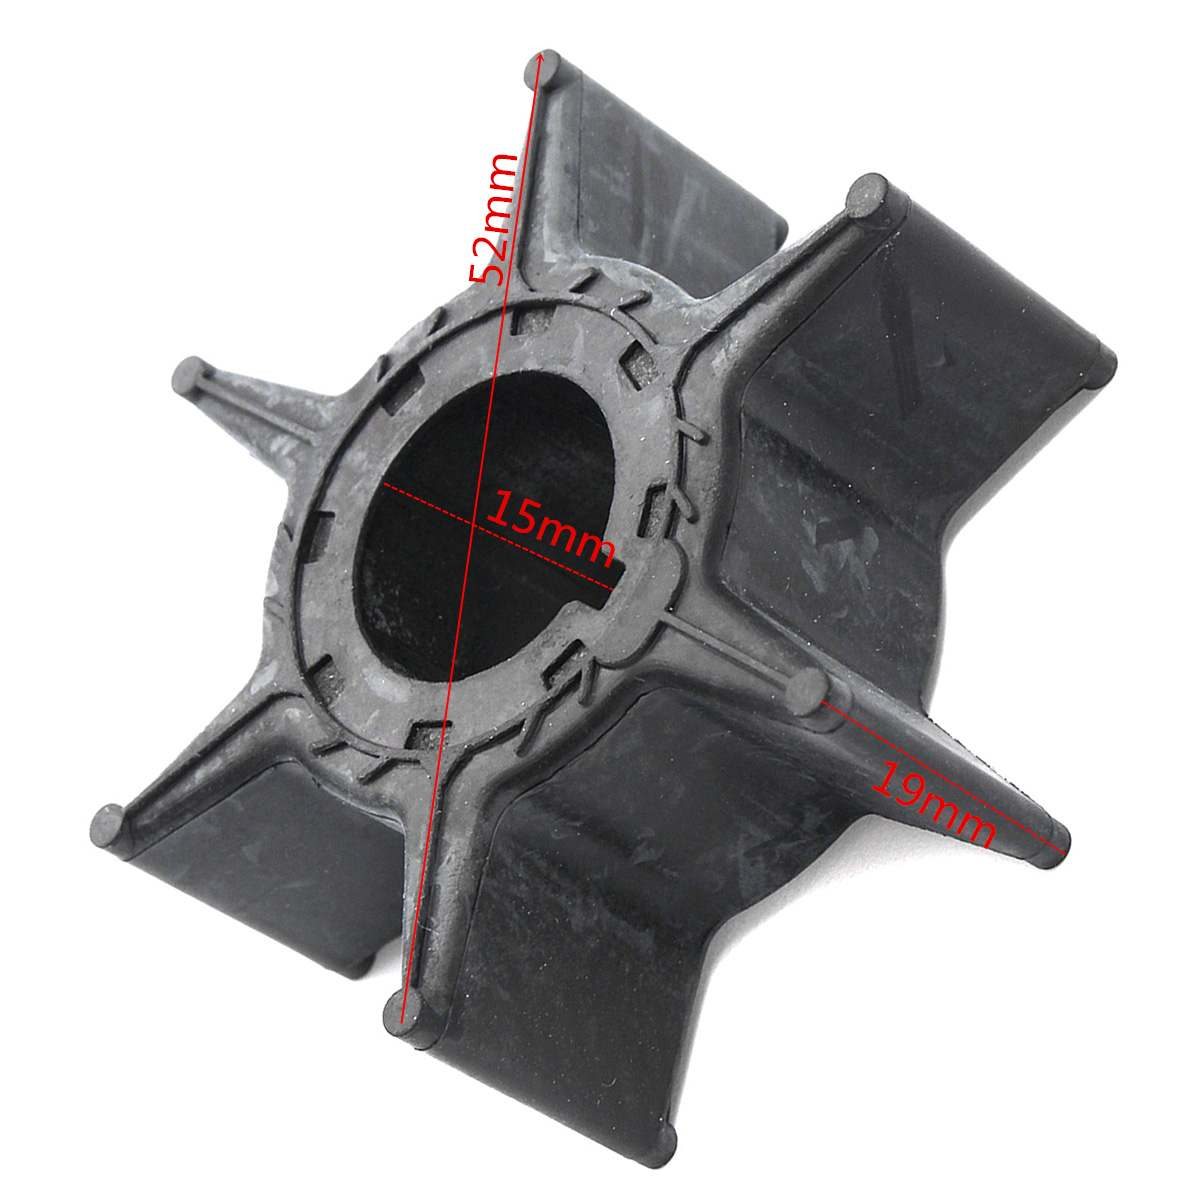 Water Pump Impeller Black Rubber For Yamaha Outboard 6H4-44352-01 676-44352-01 Sierra 18-3068 6 Blades Boat Parts & Accessories